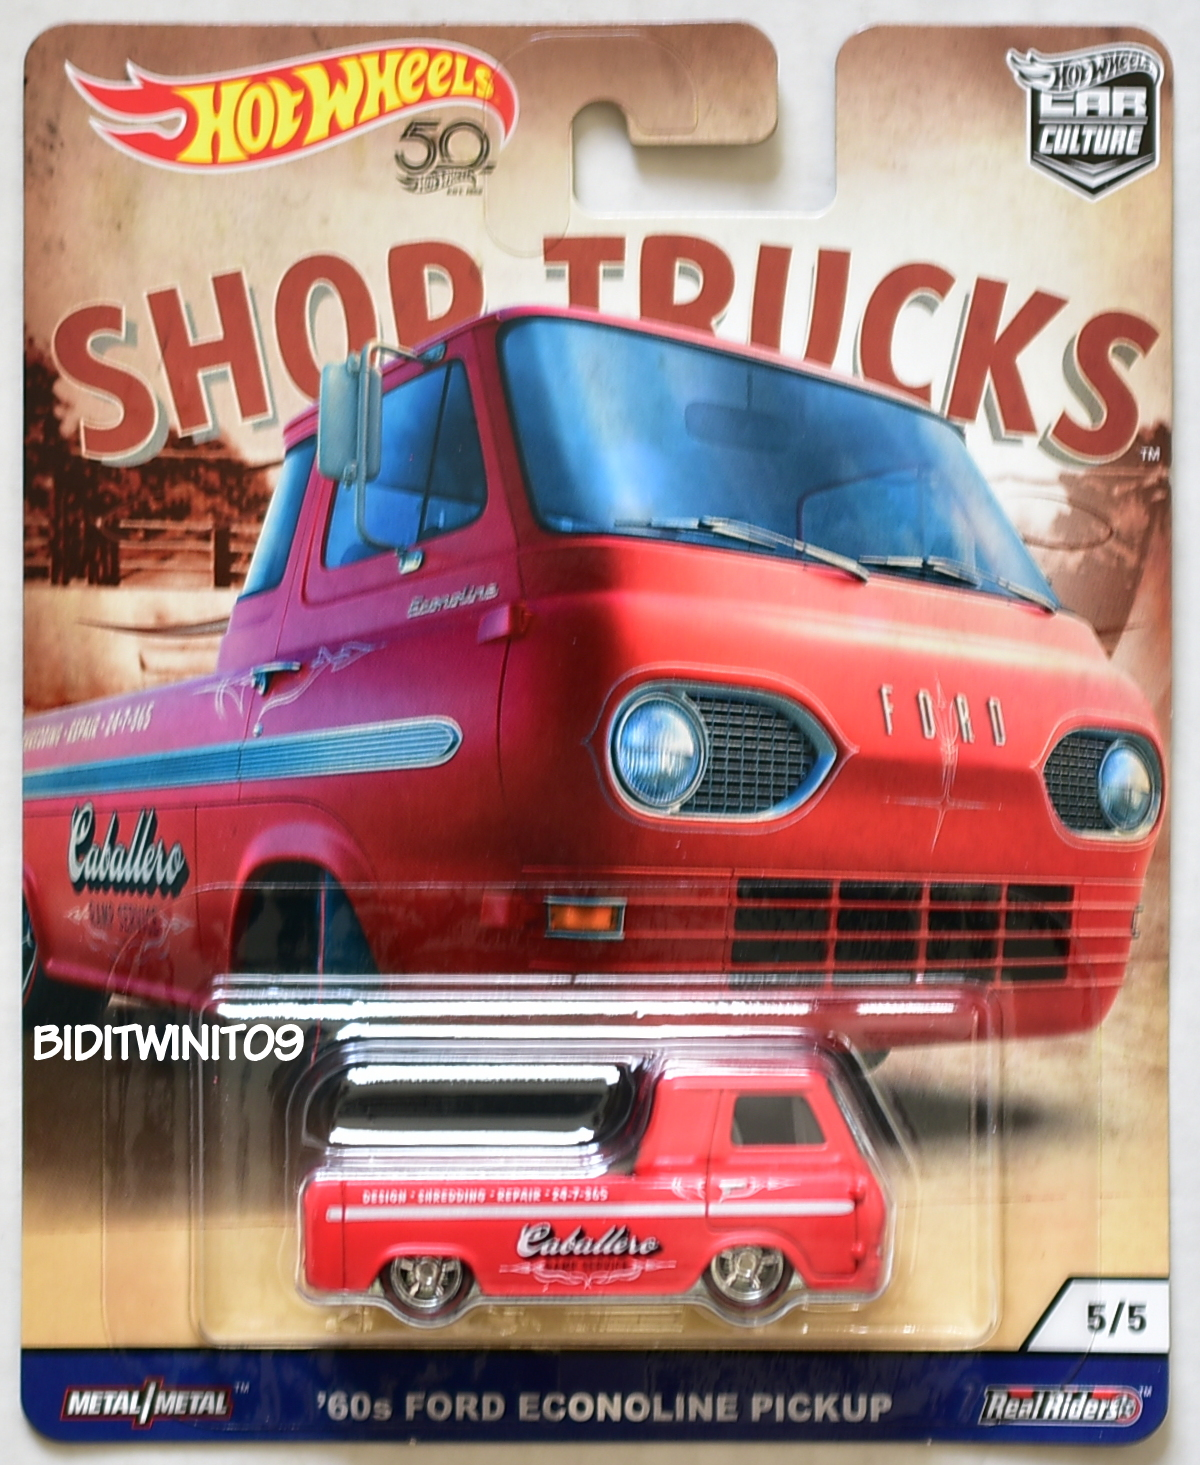 HOT WHEELS 2018 CAR CULTURE SHOP TRUCKS '60S FORD ECONOLINE PICKUP RED